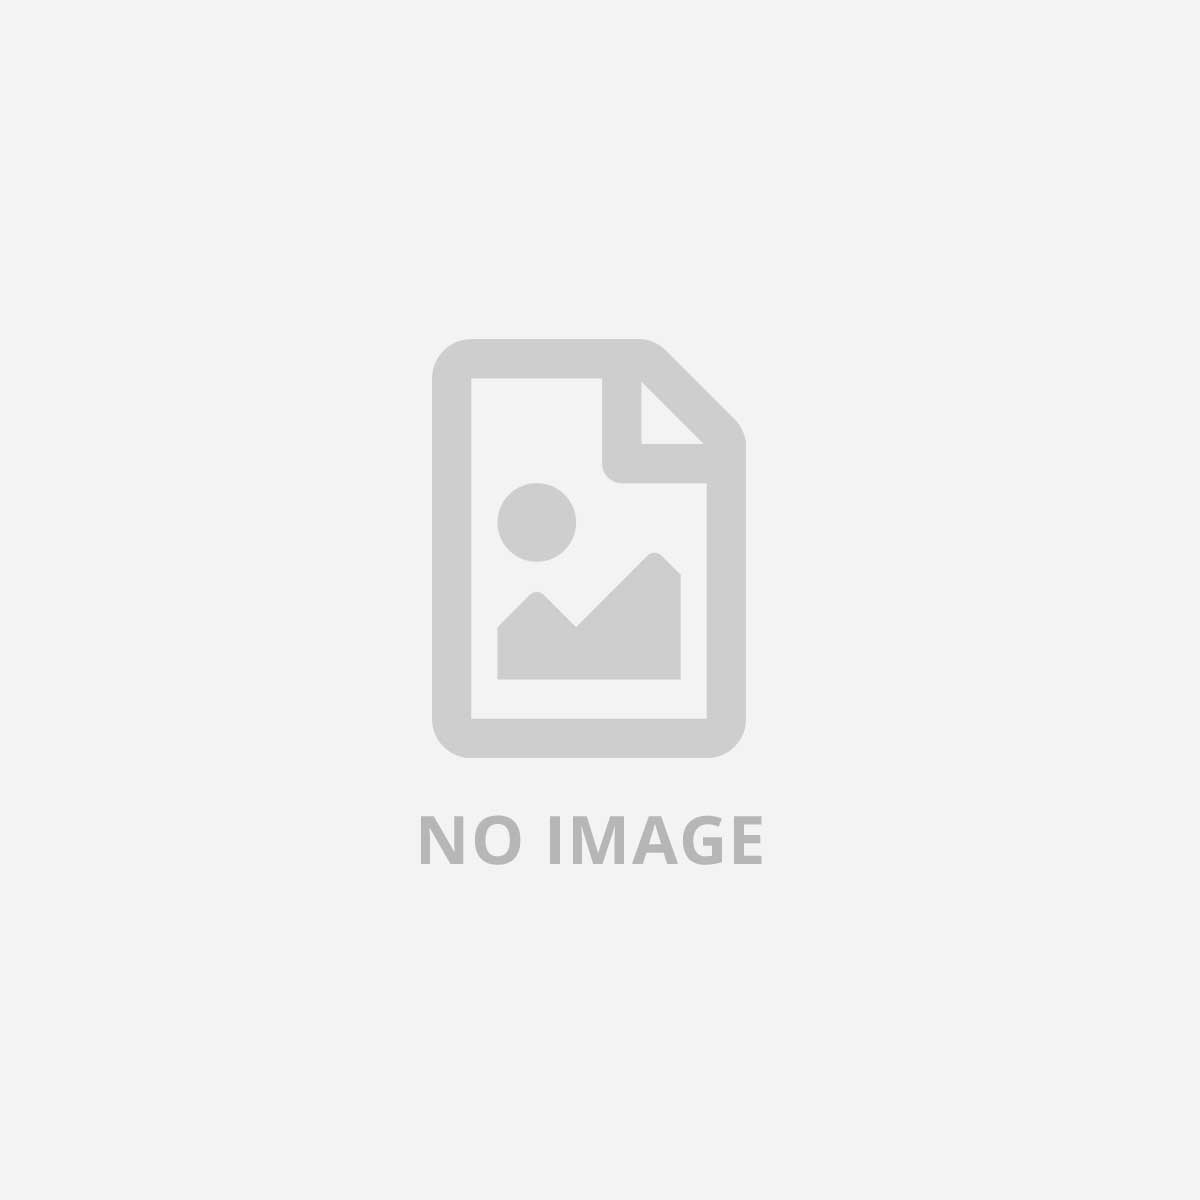 POLYCOM SOUNDSTATION2 CONF PHONE  DISPLAY